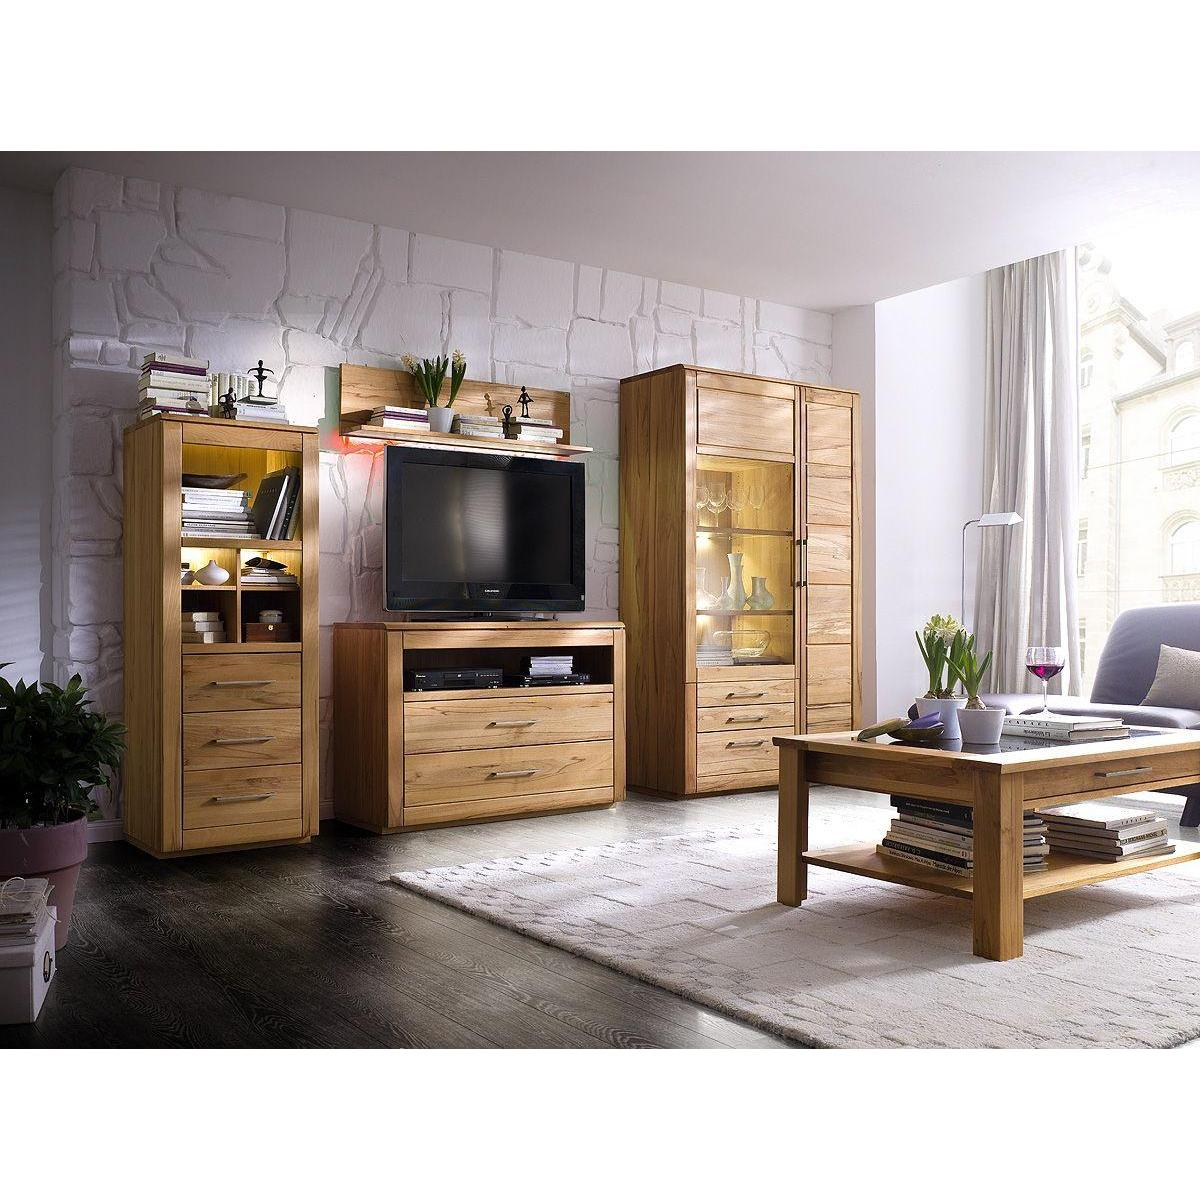 wohnzimmer komplett innenarchitektur und m belideen. Black Bedroom Furniture Sets. Home Design Ideas